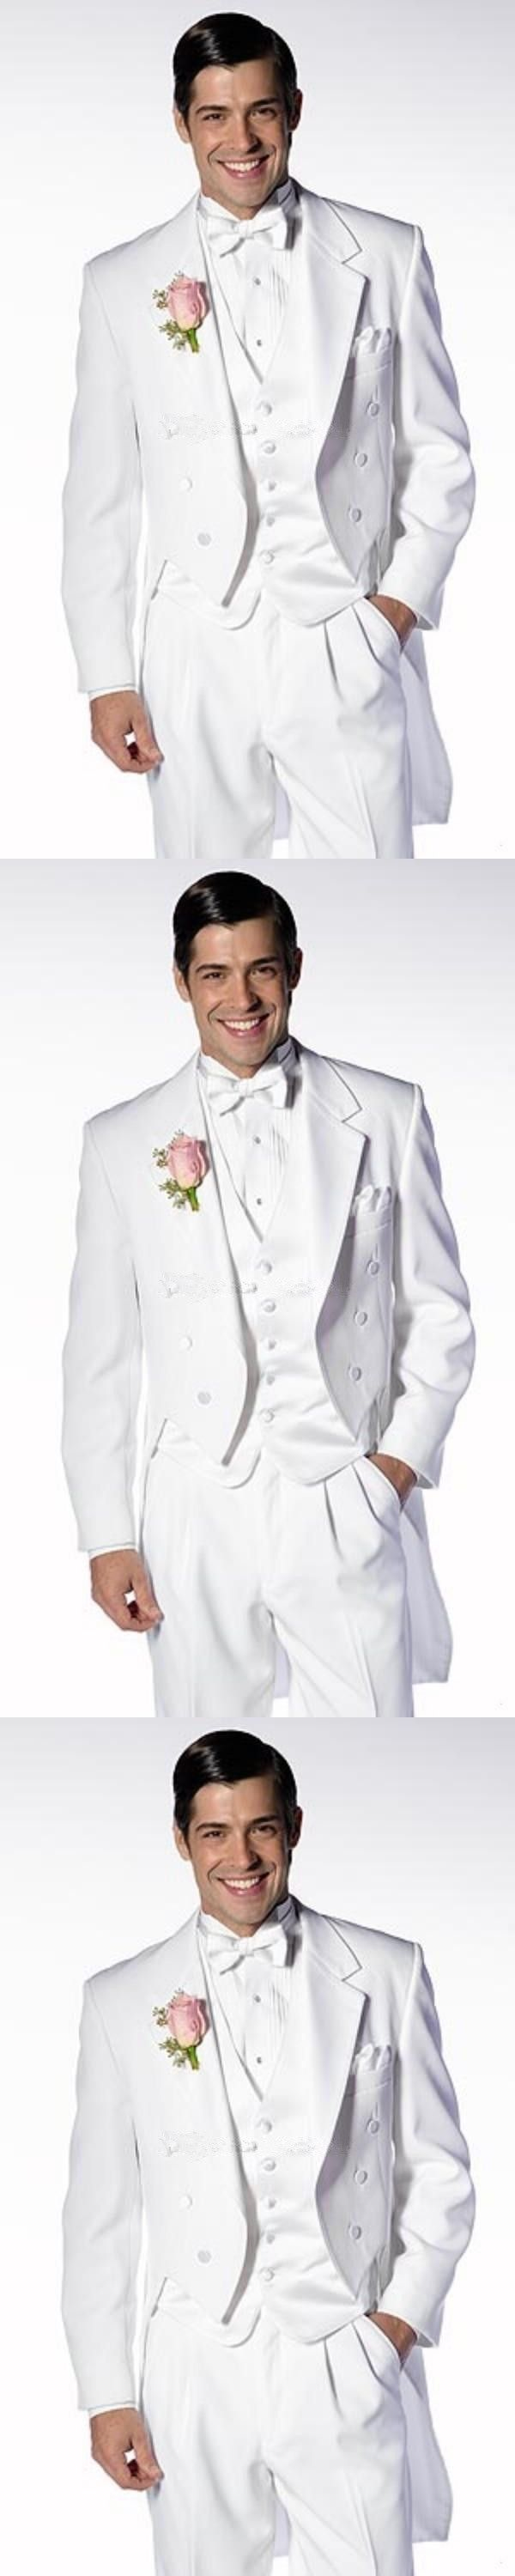 New Style Long white Evening Groom Tuxedos One Button Peaked Lapel Party Wedding Prom Ball Classic Suits( jacket+Pant+vest+tie)